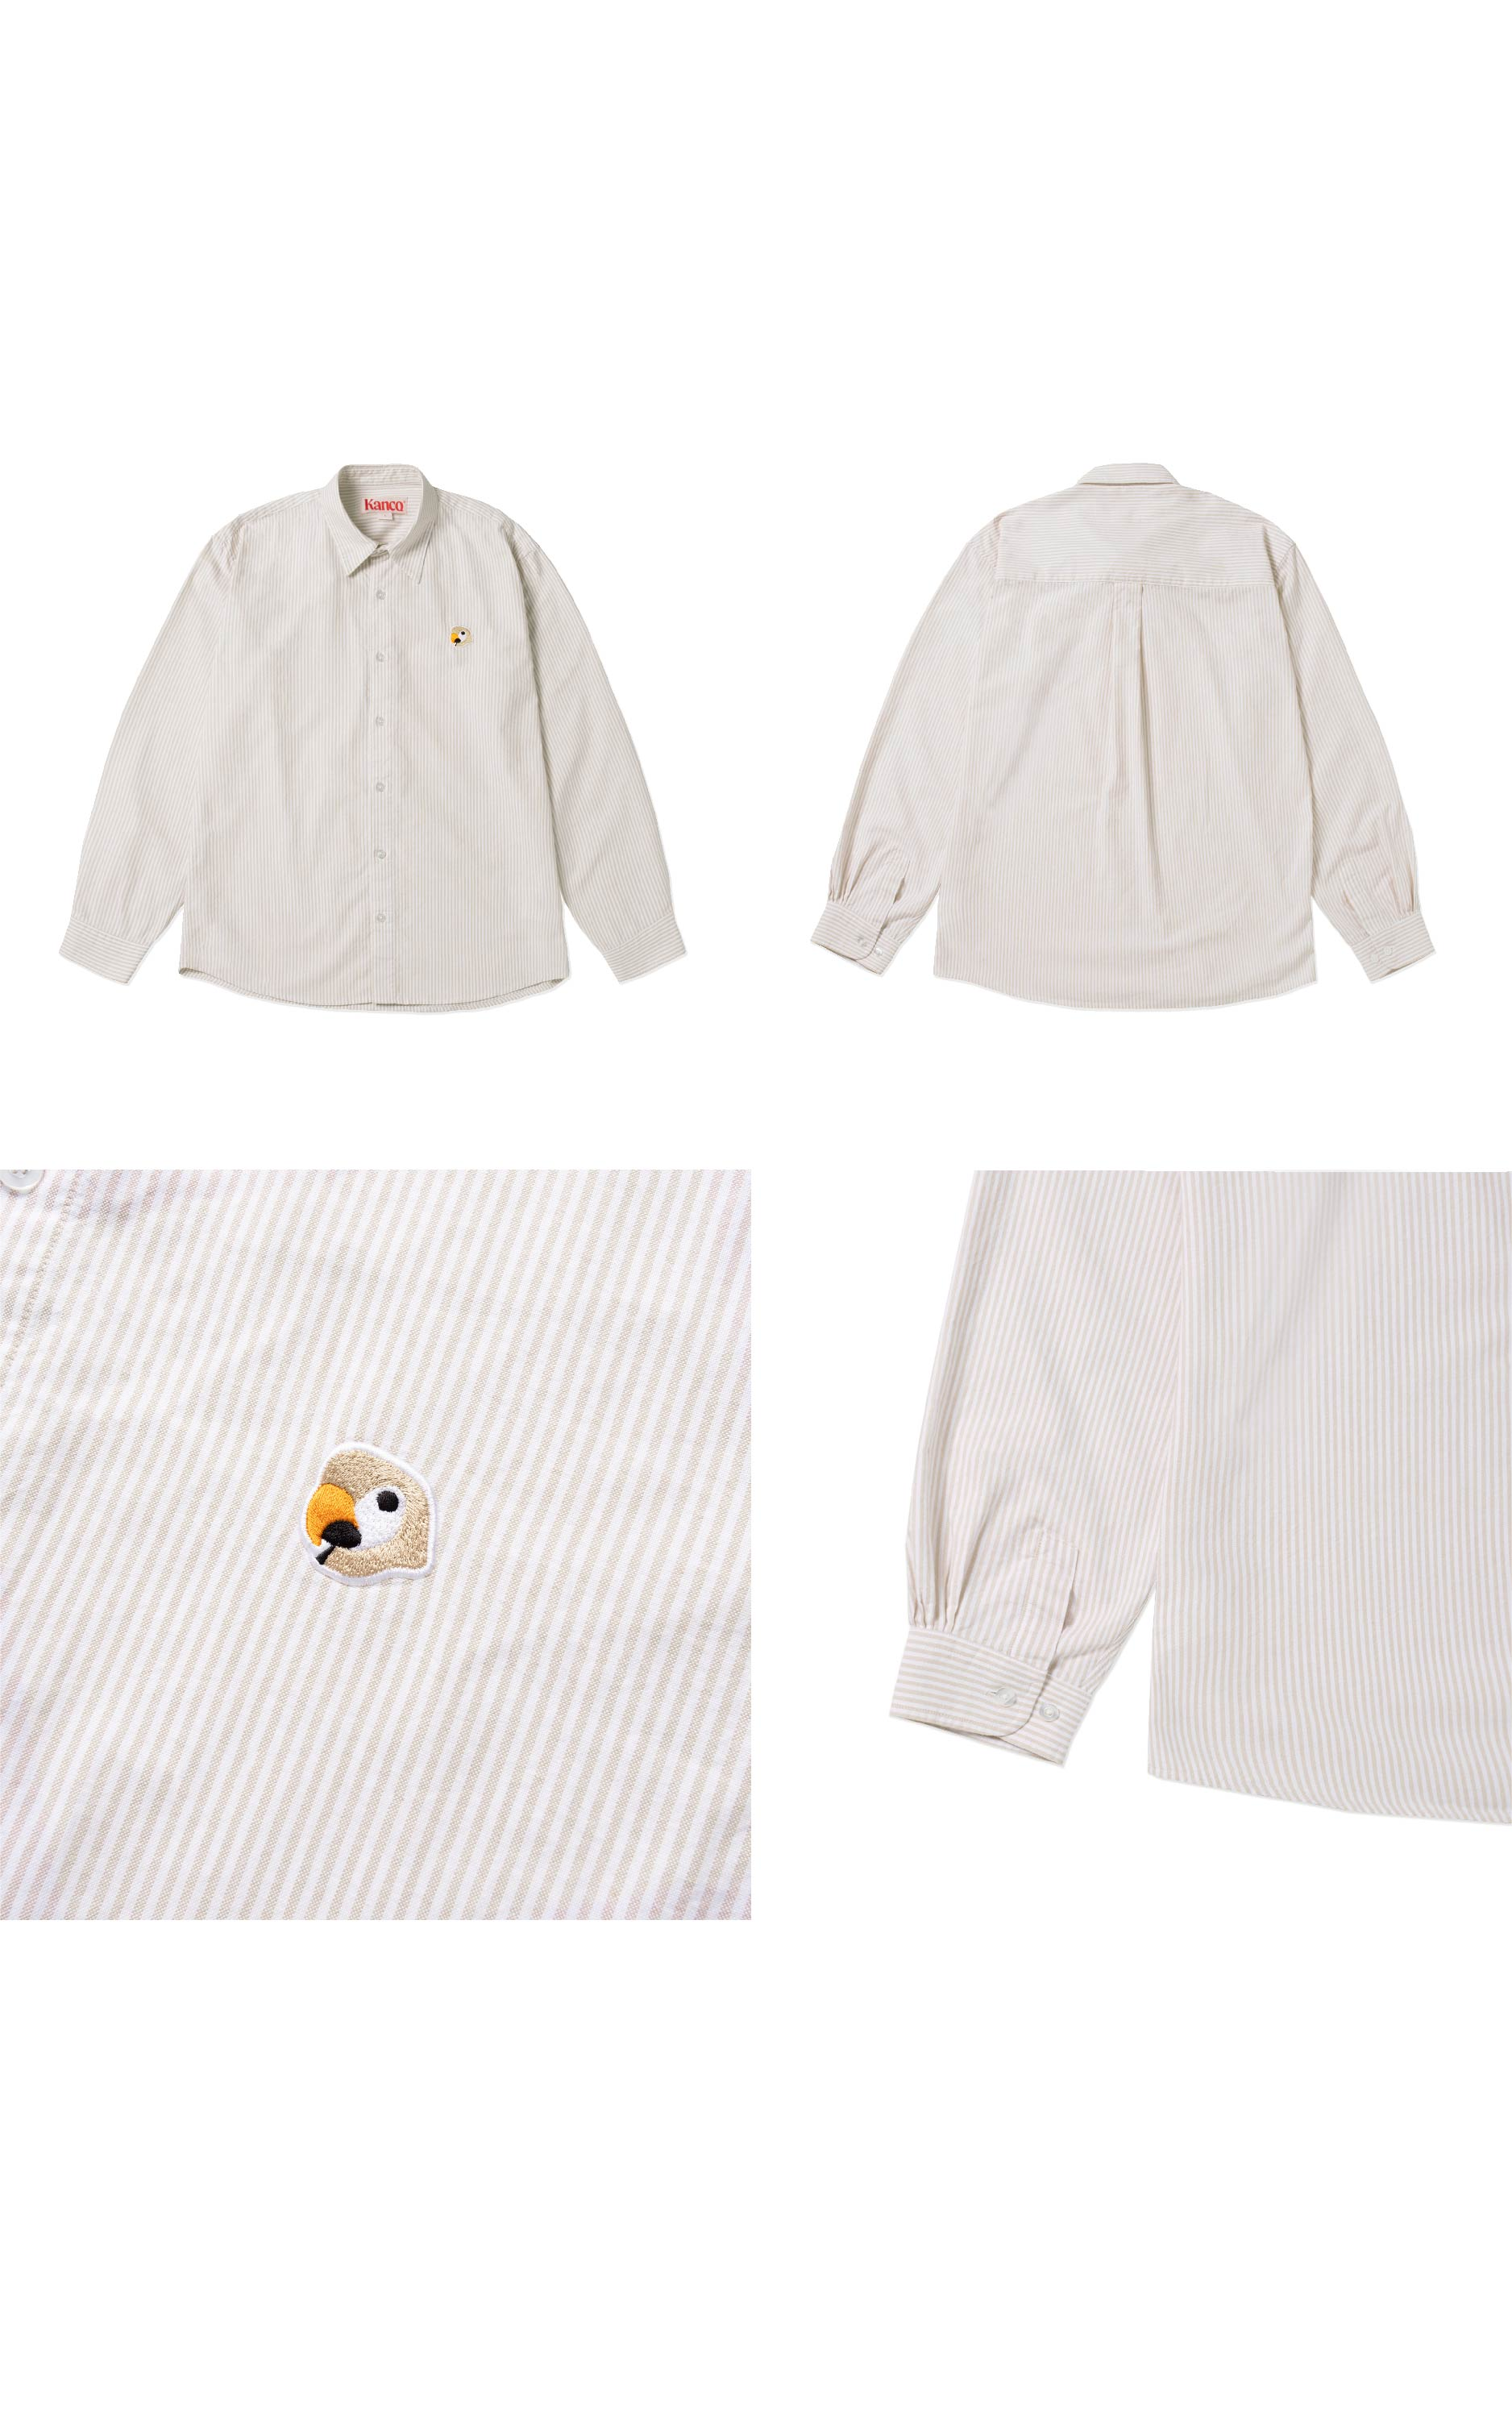 칸코(KANCO) KANCO LOGO OXFORD SHIRT beige